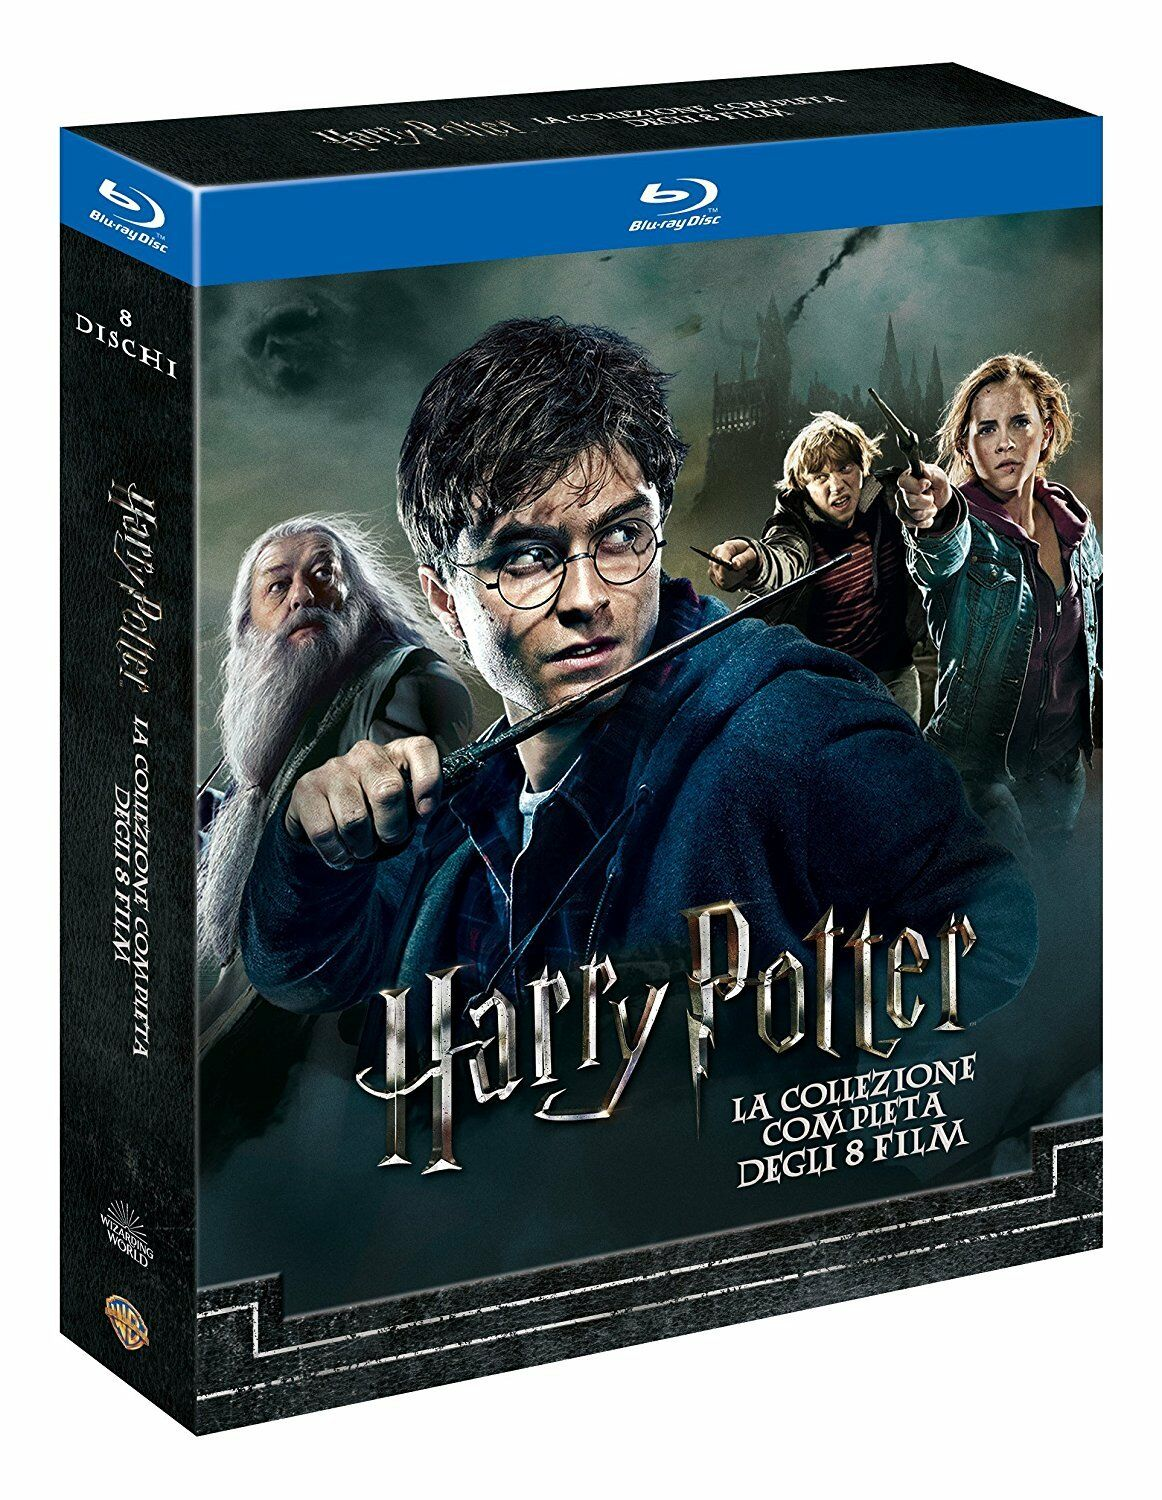 Harry Potter BOX Komplettbox 1-7.2 Teil 1+2+3+4+5+6+7.1+7.2 NEUWARE OVP Blu-ray